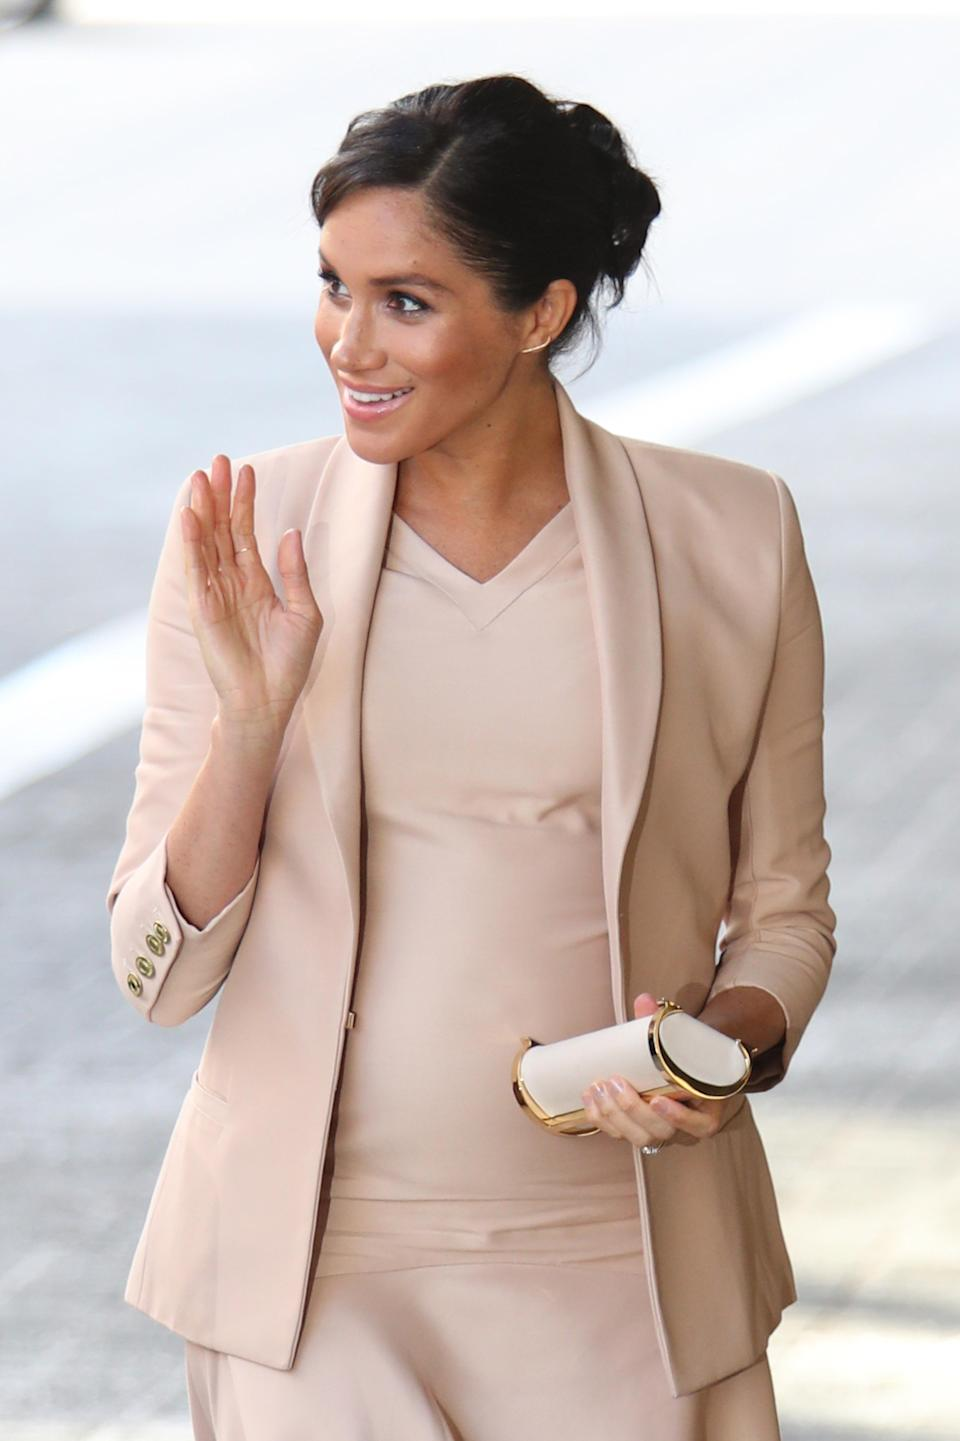 The Duchess of Sussex is rumoured to be hiring a doula to help support her through pregnancy and birth [Photo: Getty]